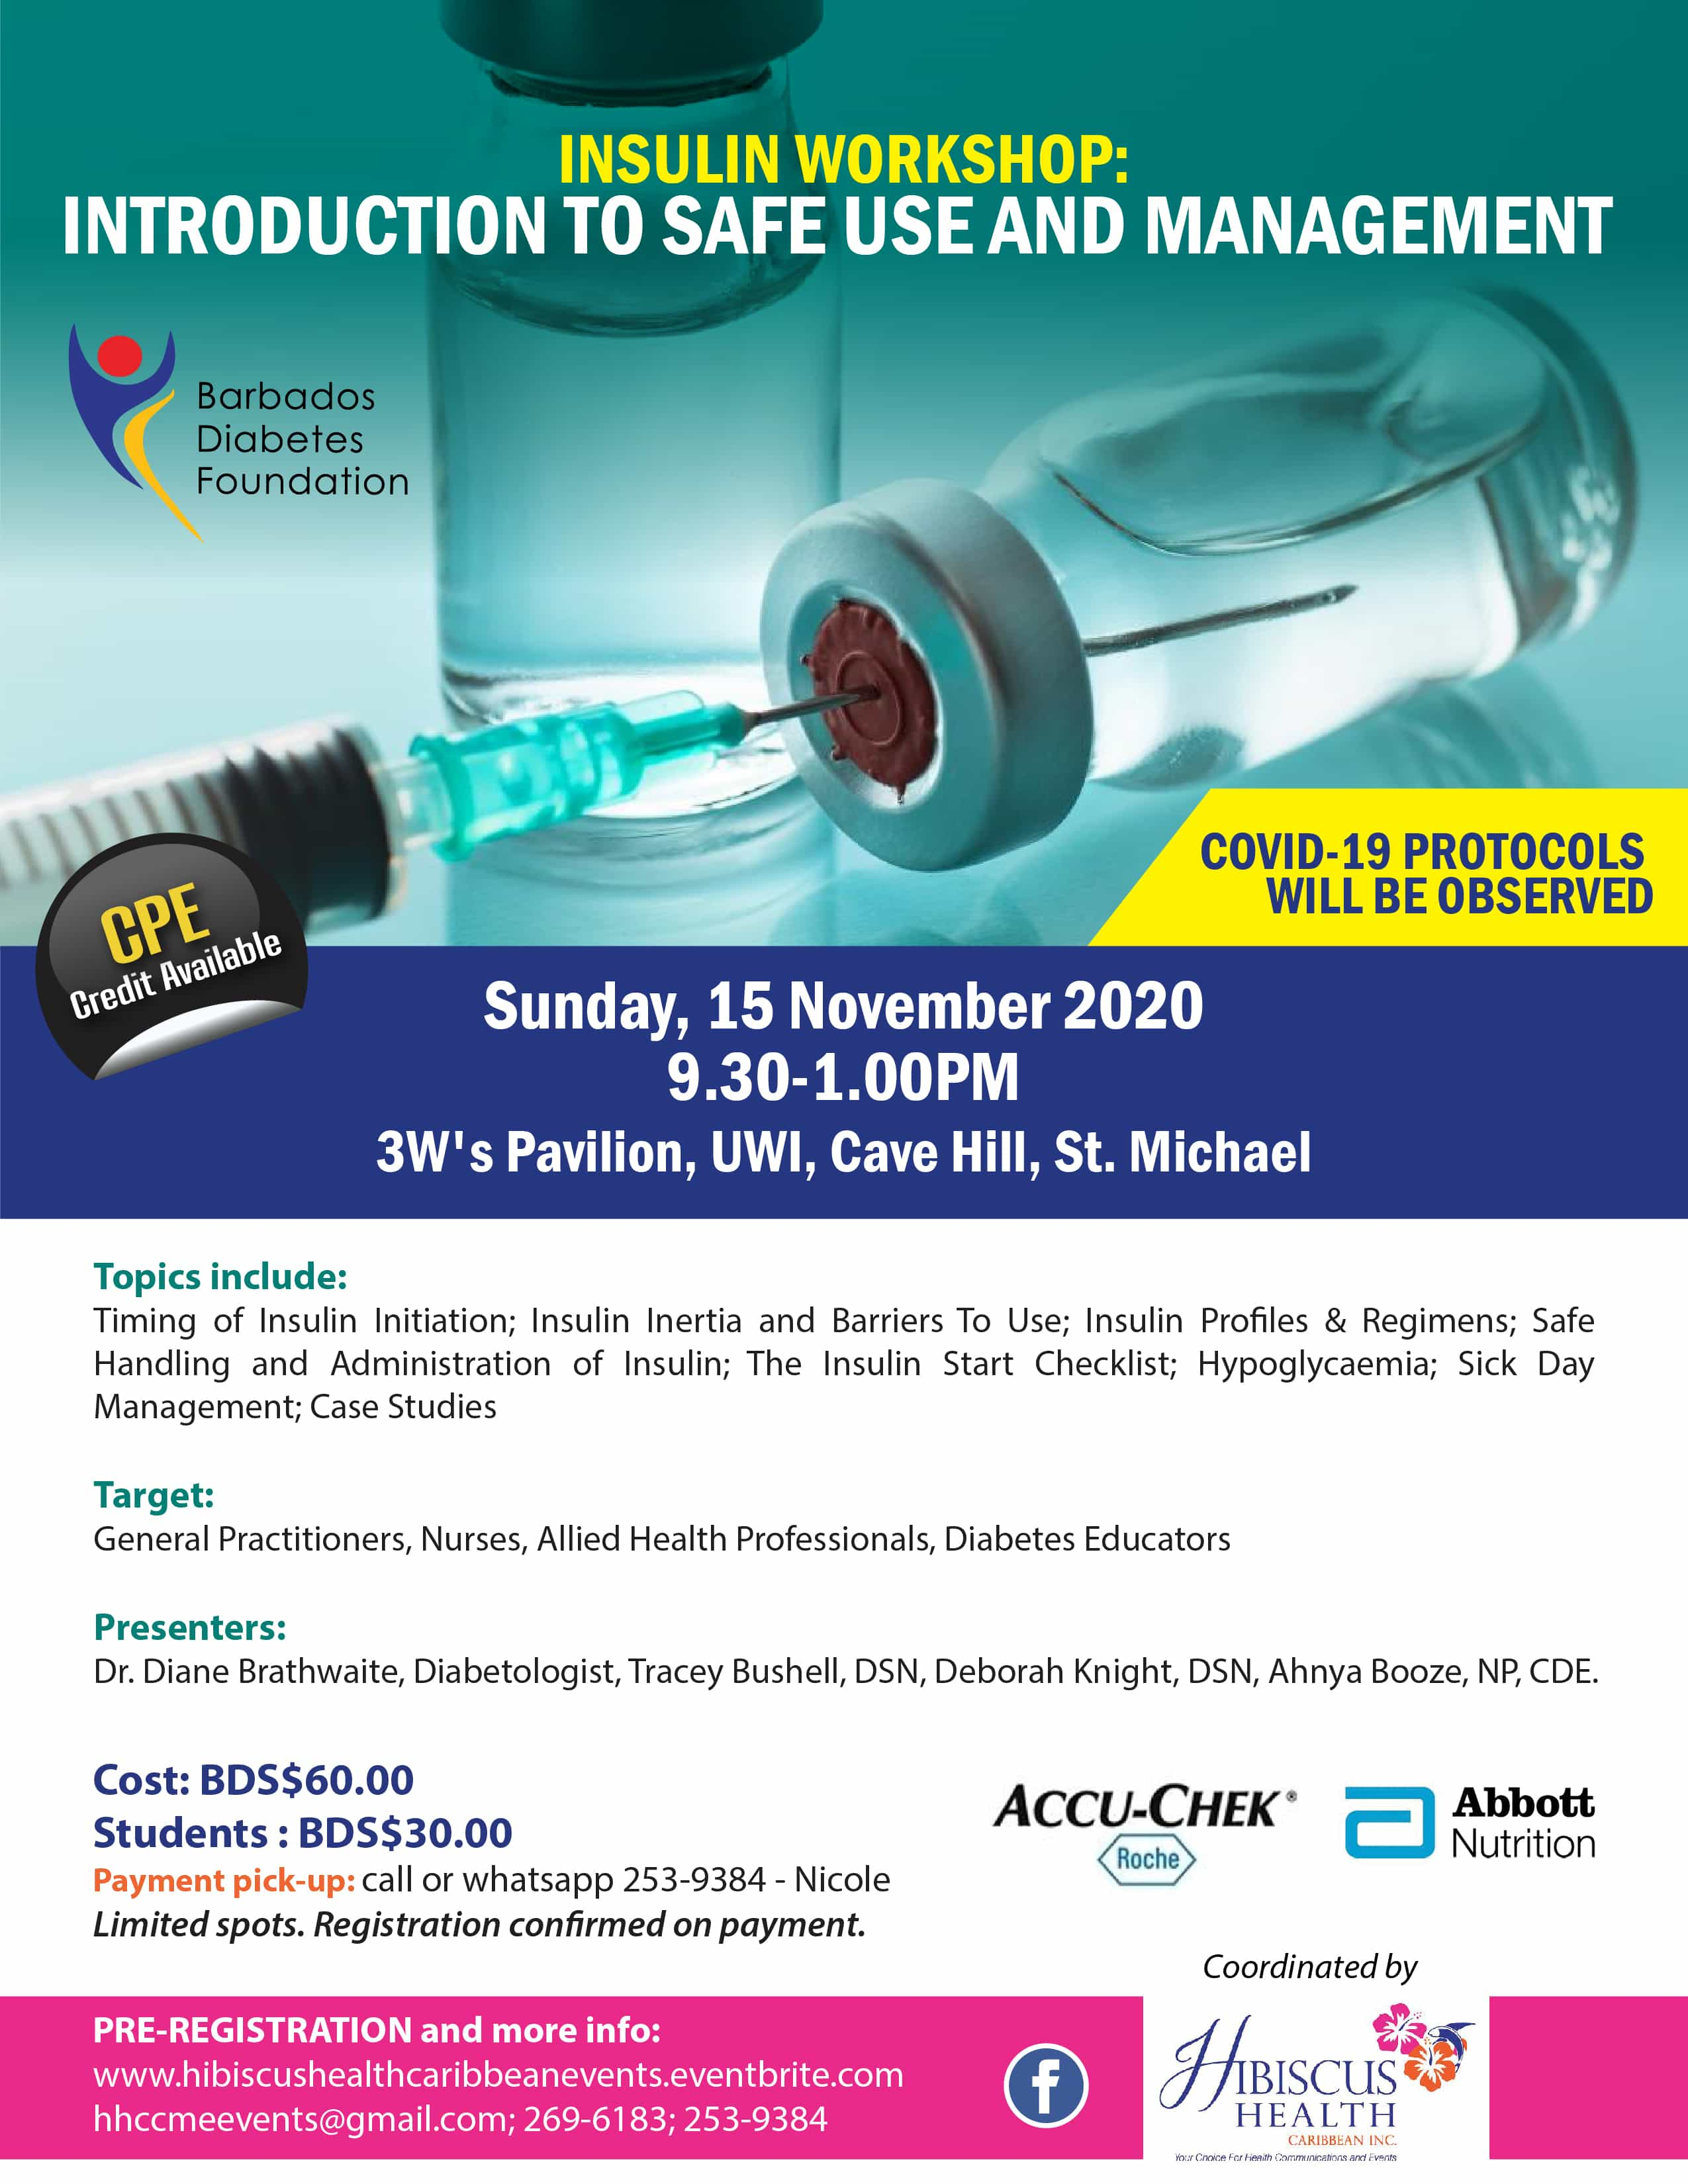 Introduction to Insulin Workshop